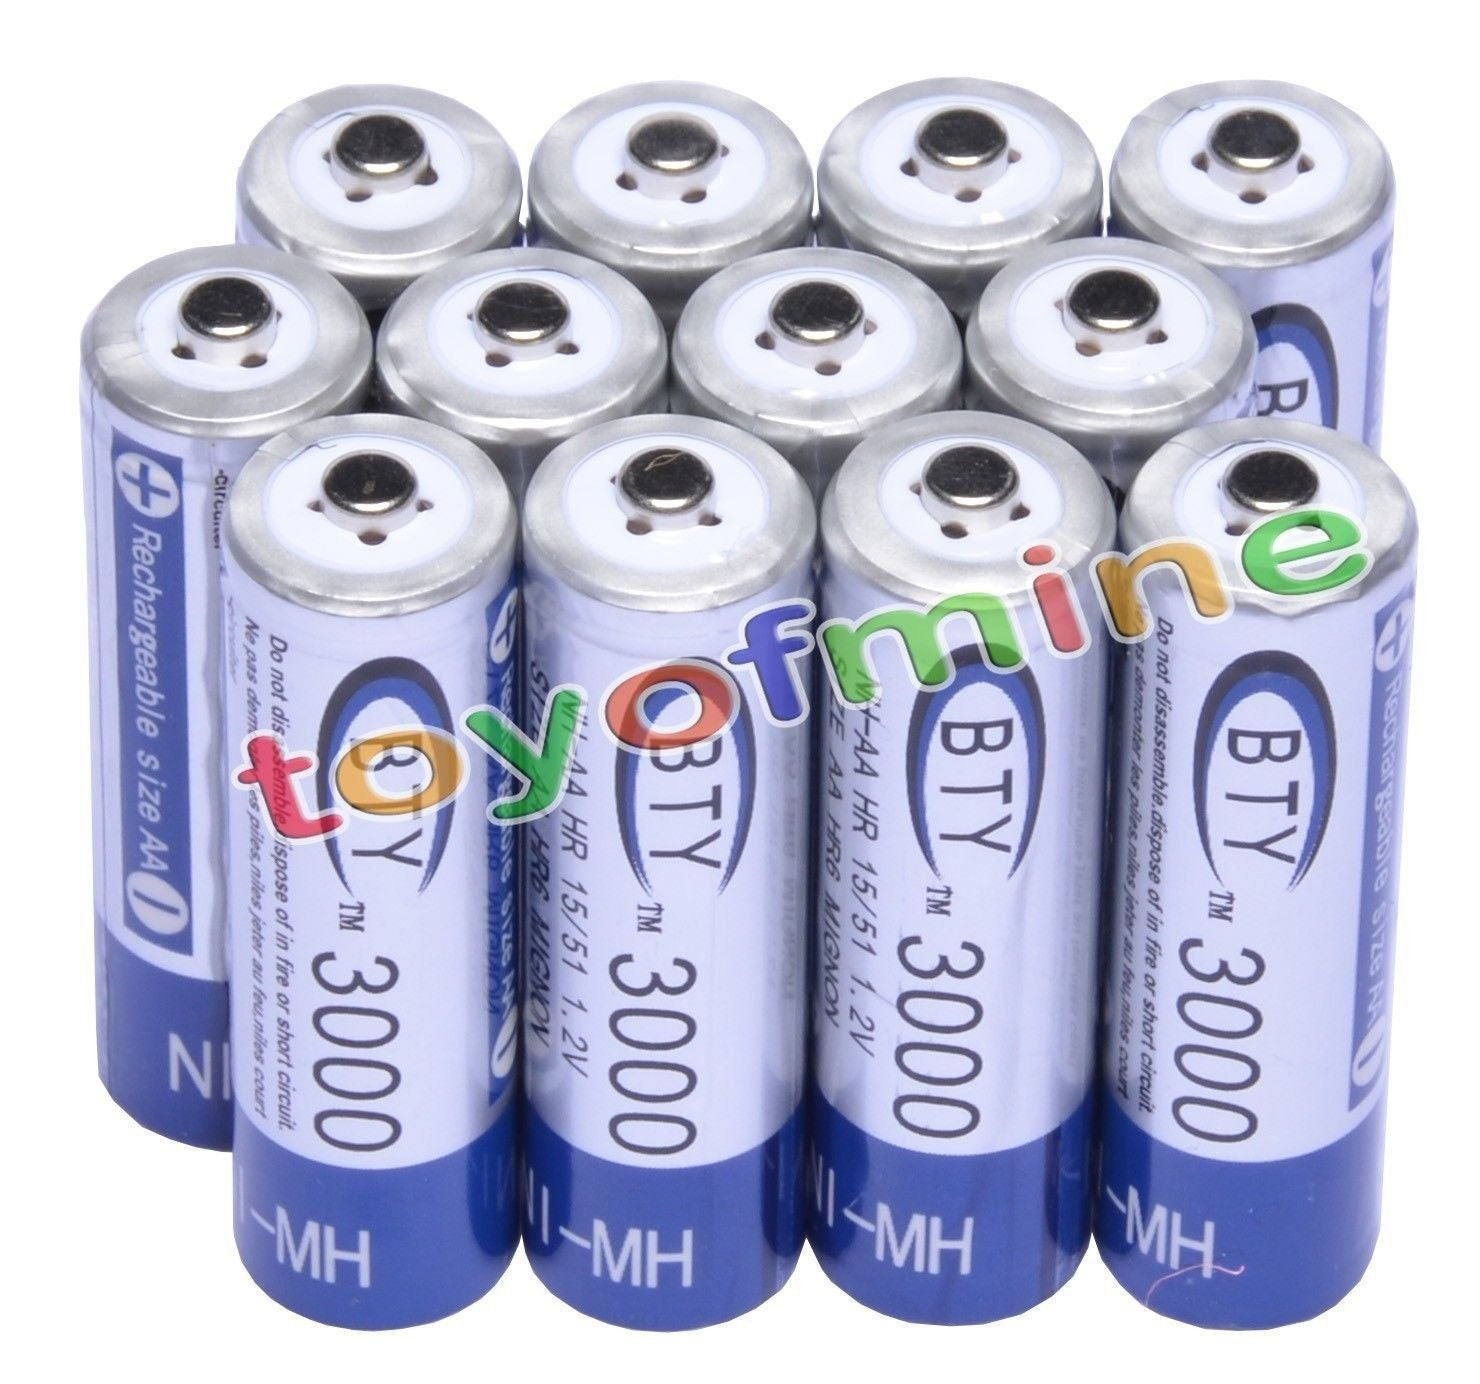 12 Rechargeable Batteries